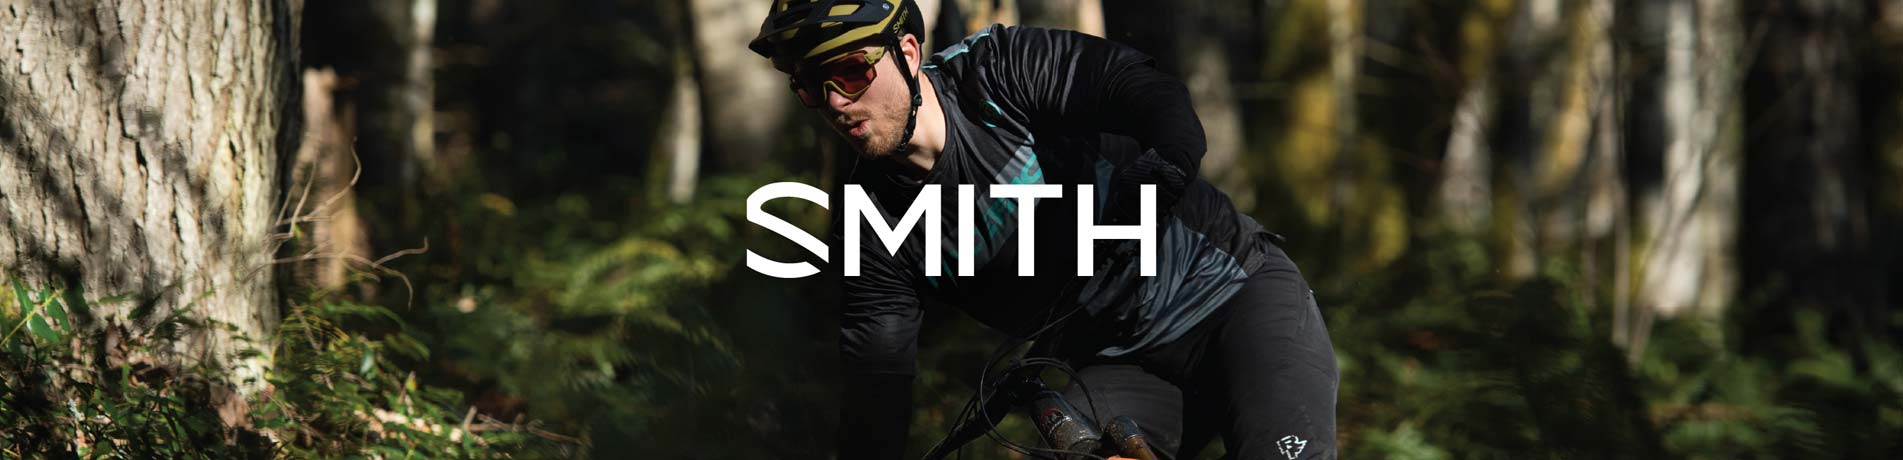 8ac6672701 Smith Flywheel Sunglasses - Smith Sunglasses - RxSport